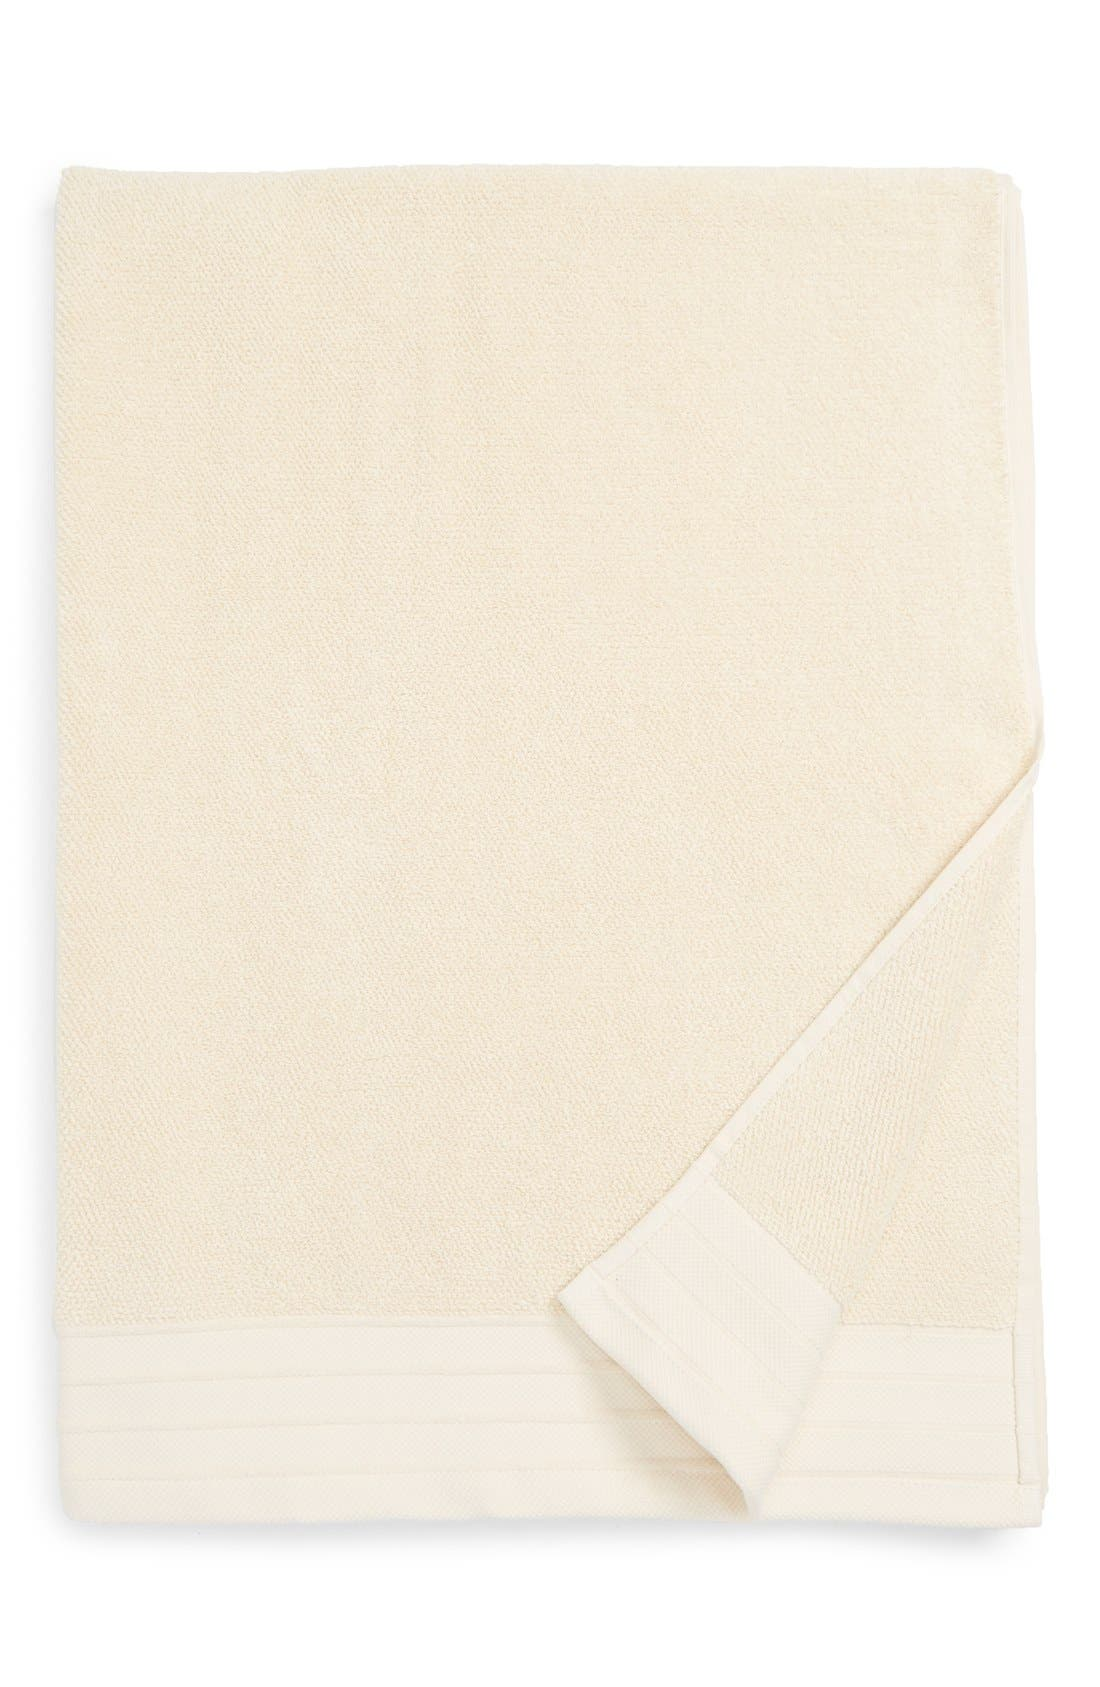 Alternate Image 1 Selected - UGG® Classic Luxe Cotton Bath Sheet